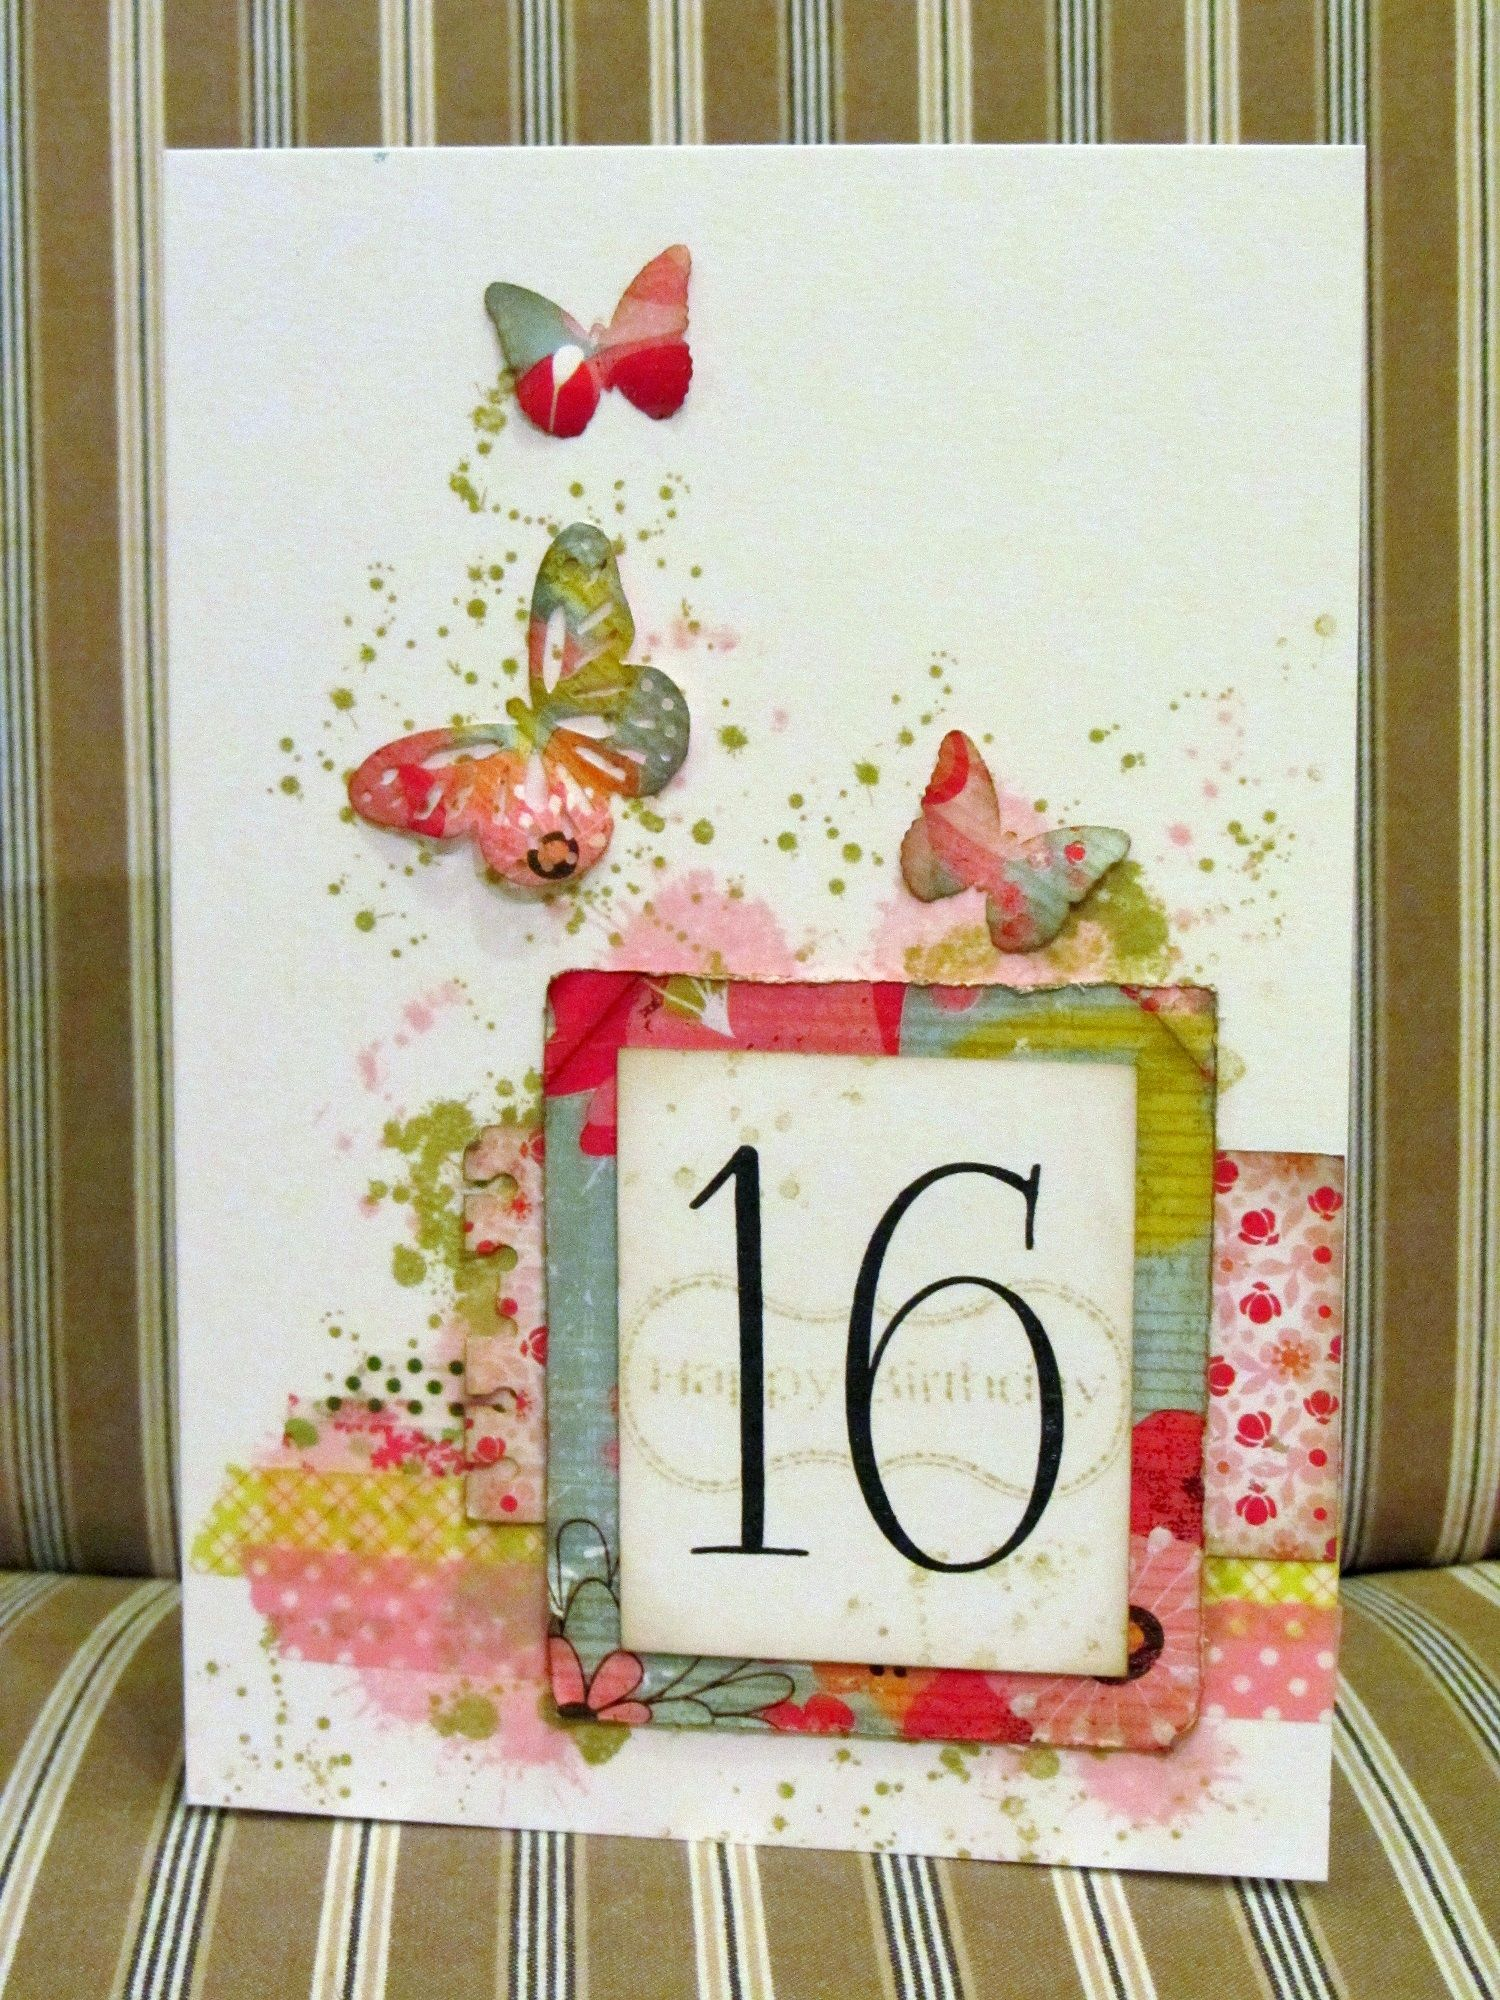 My Daughters 16th Birthday Card Made With Paper Scraps Washi Tape And Distress Inks Lovin It Lizard Cards